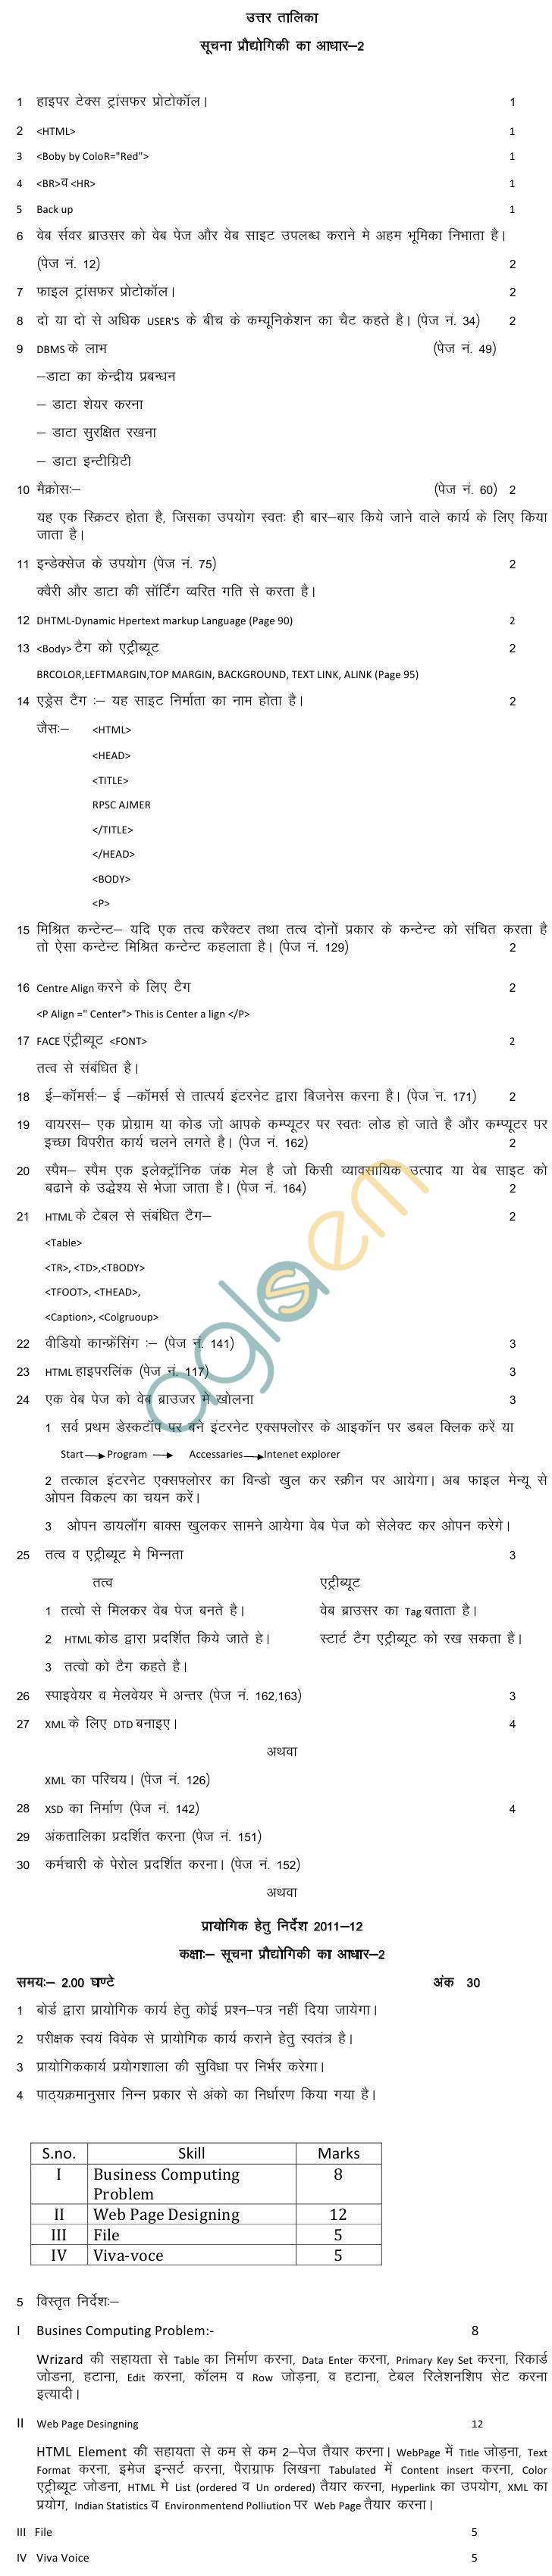 Rajasthan Board Class 10 Foundation of Information Practices Model Question Paper